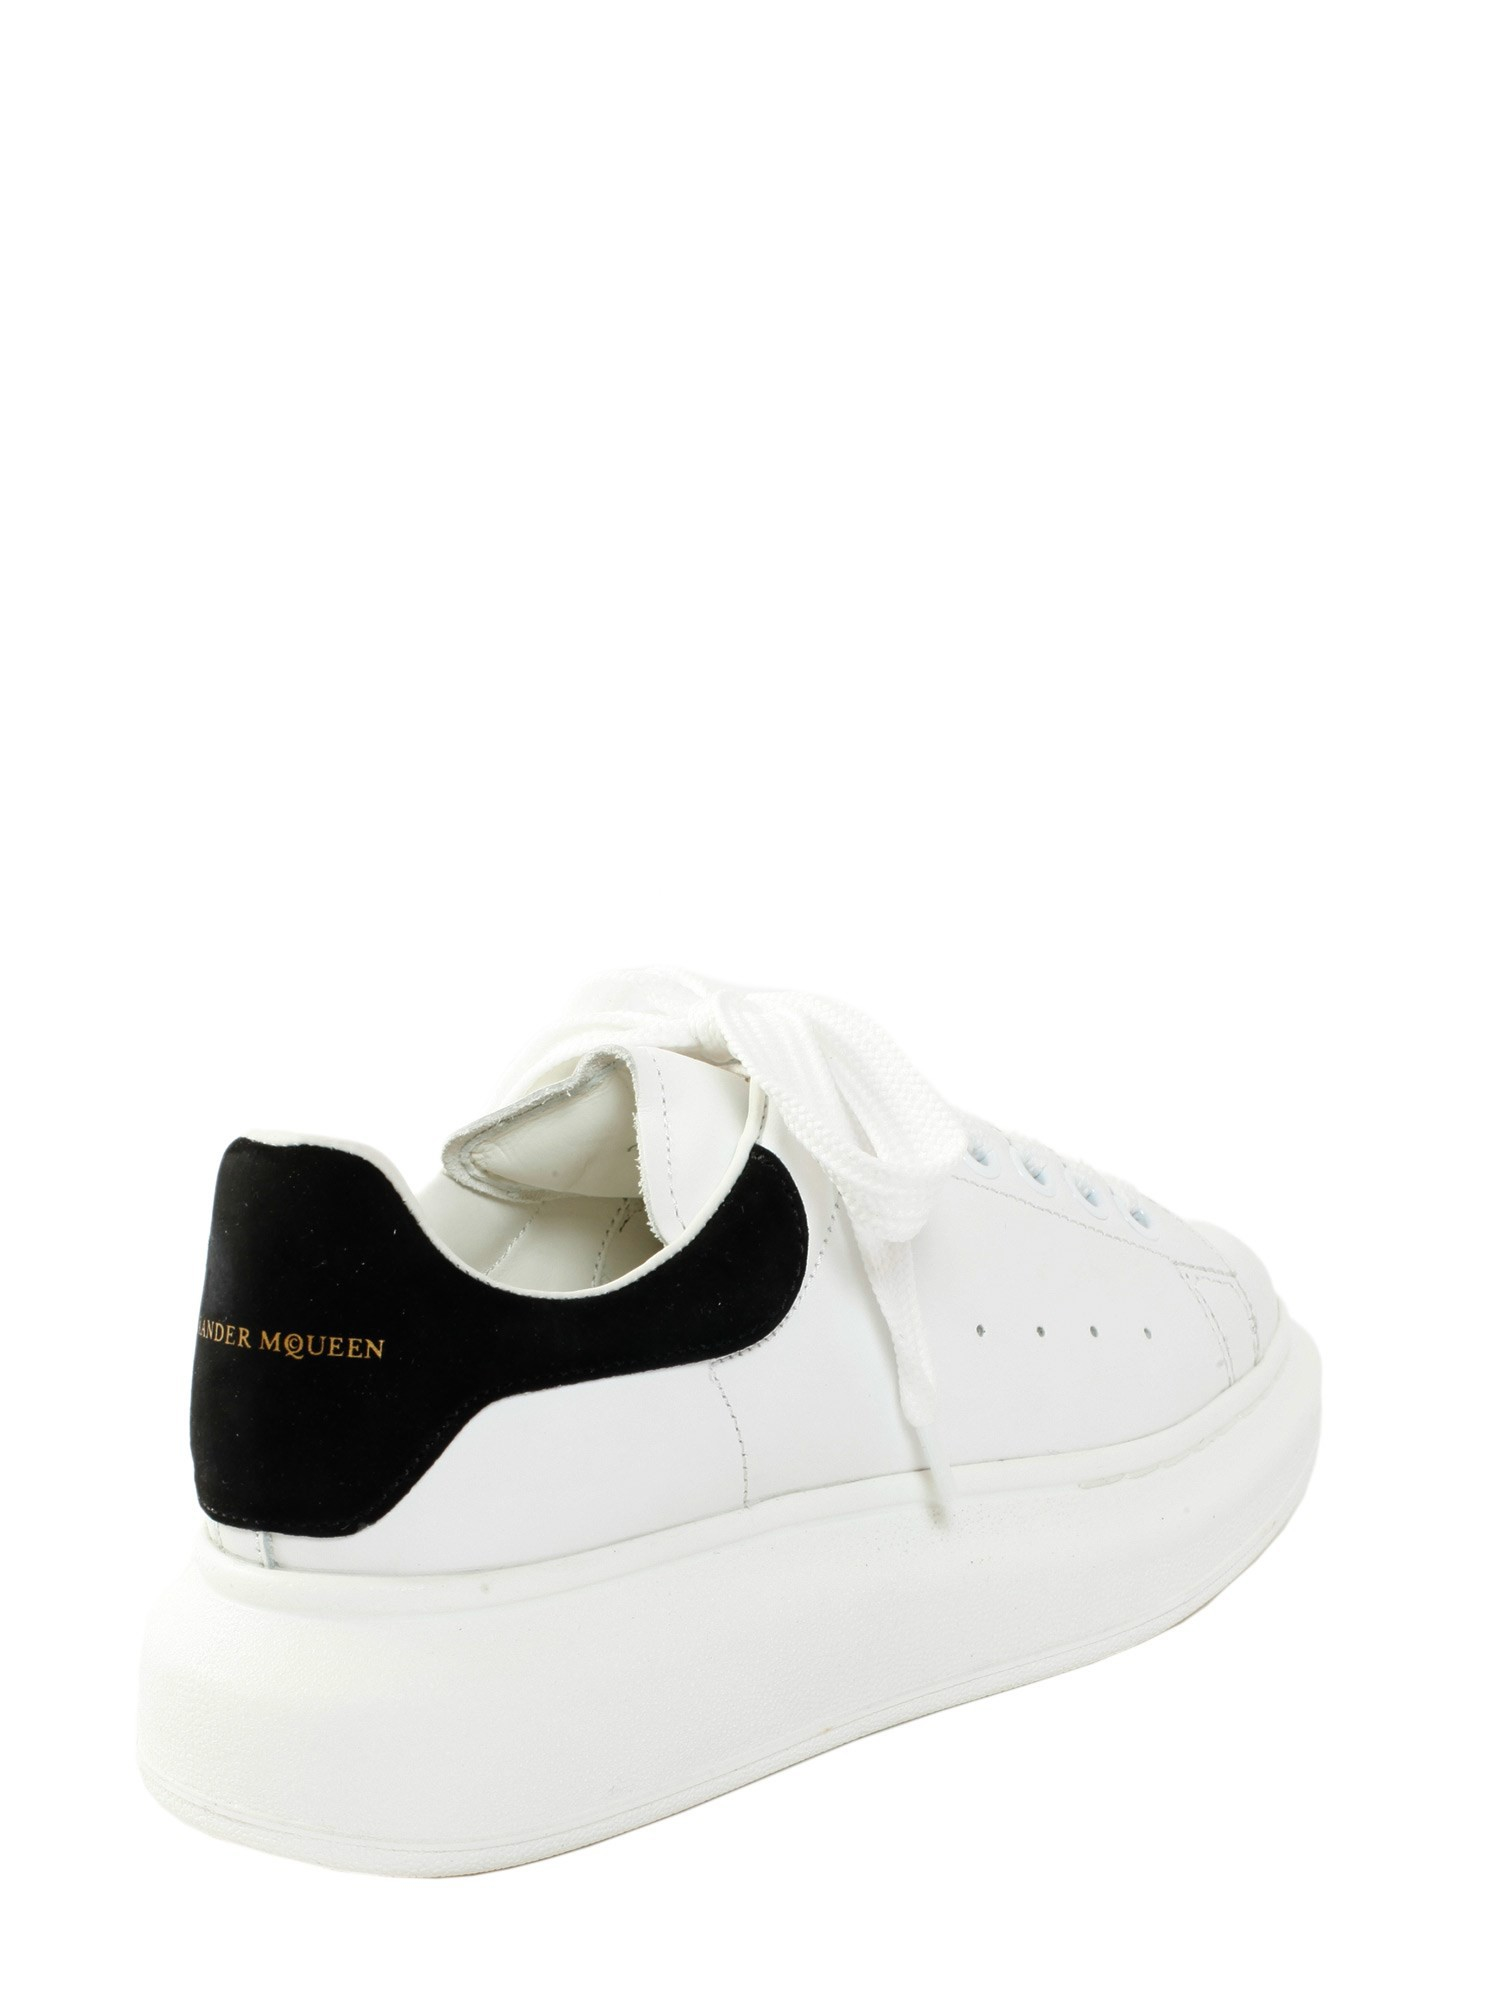 alexander mcqueen oversize sneakers in white bianco lyst. Black Bedroom Furniture Sets. Home Design Ideas